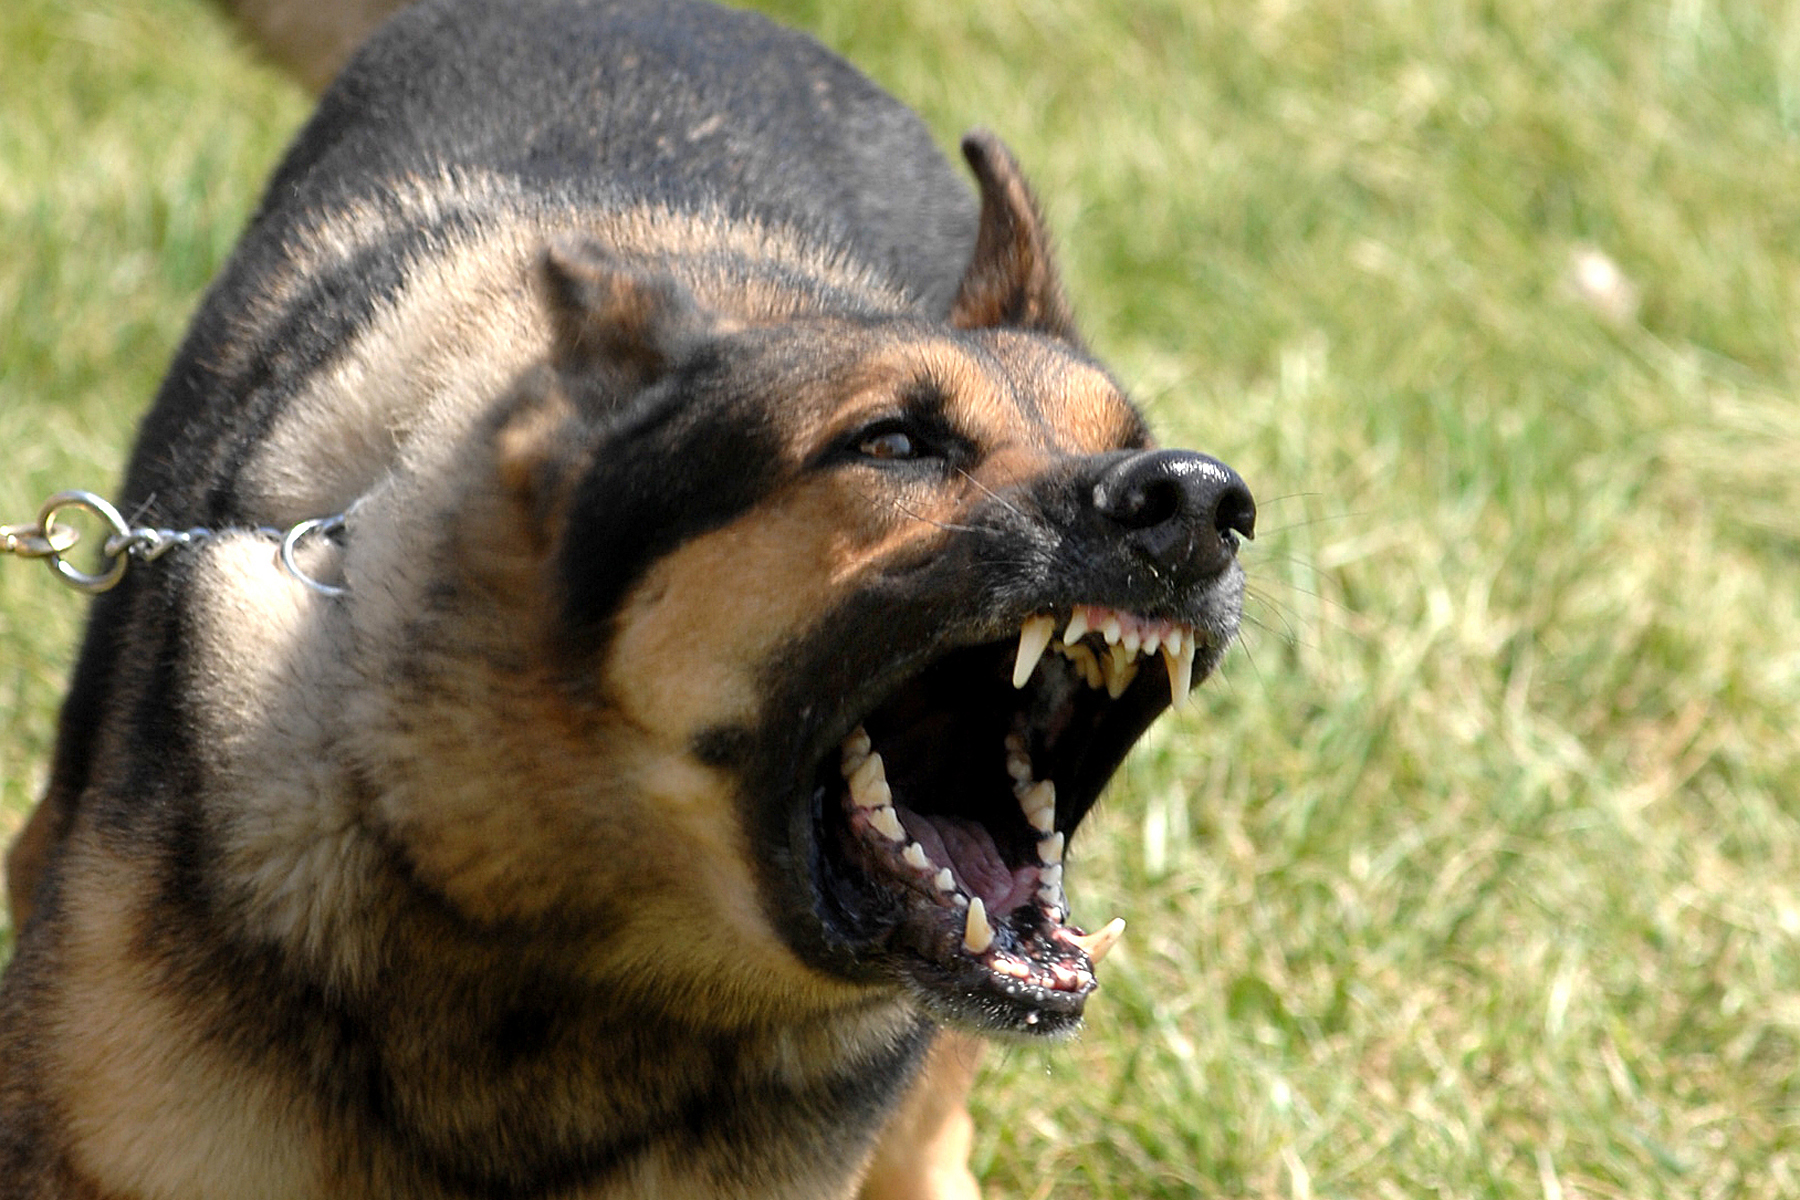 A barking dog issue becomes a soapbox for intolerance